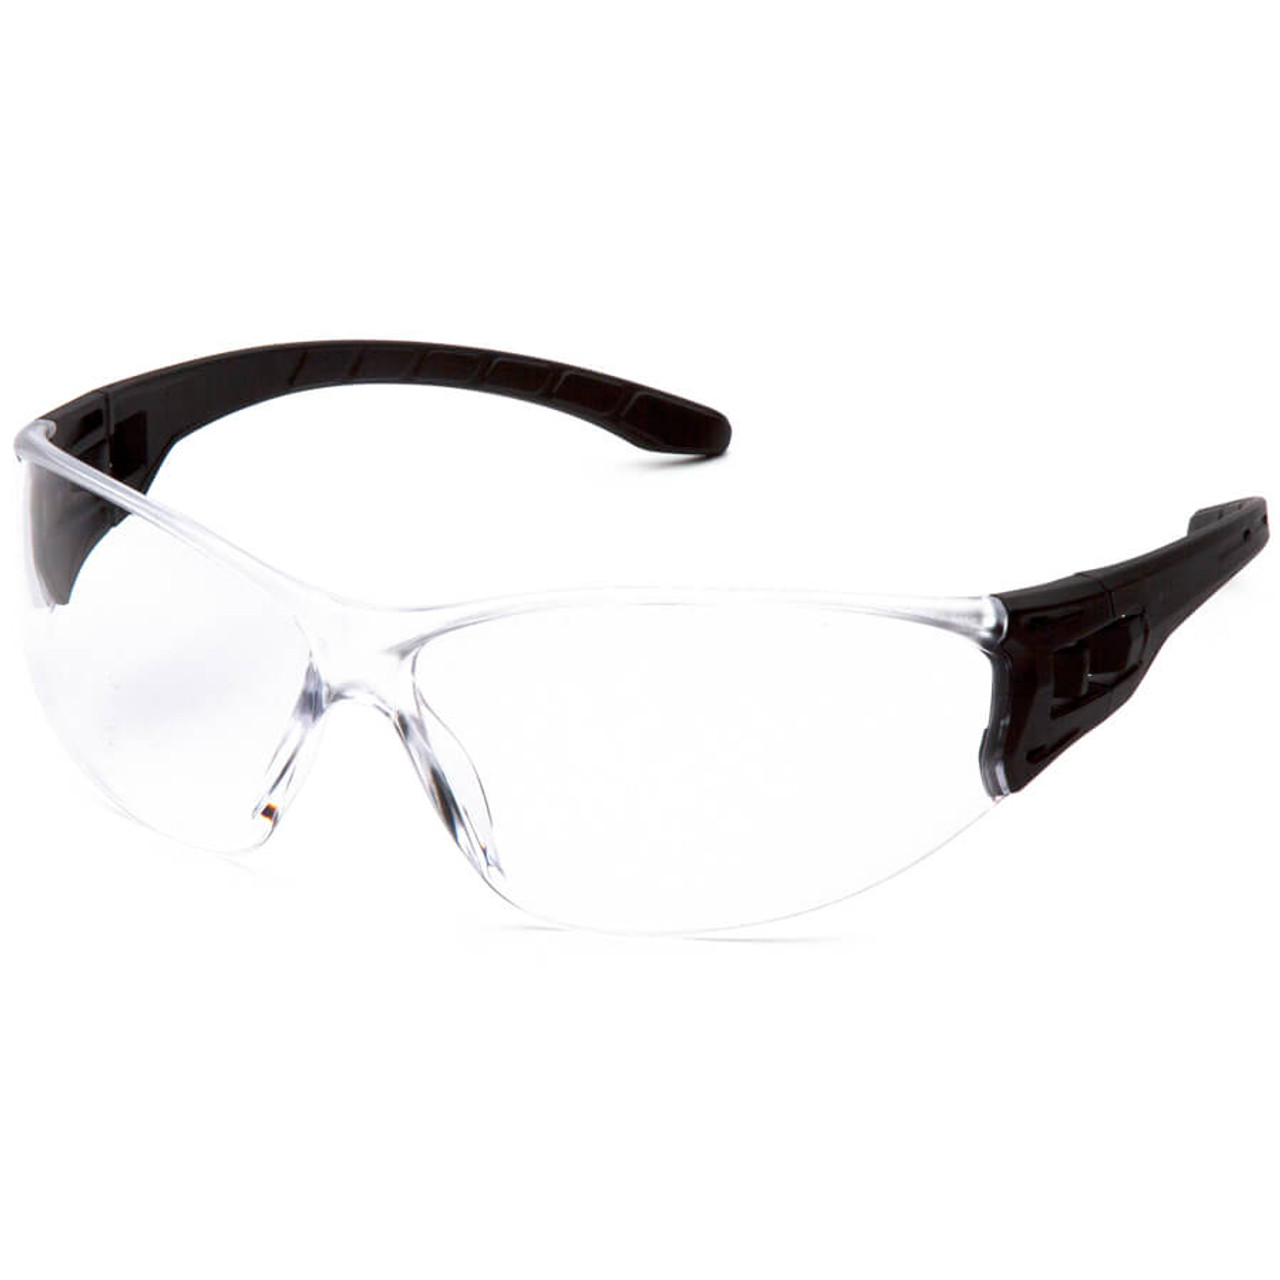 Ess Assorted Safety Glasses Scratch-Resistant Wraparound